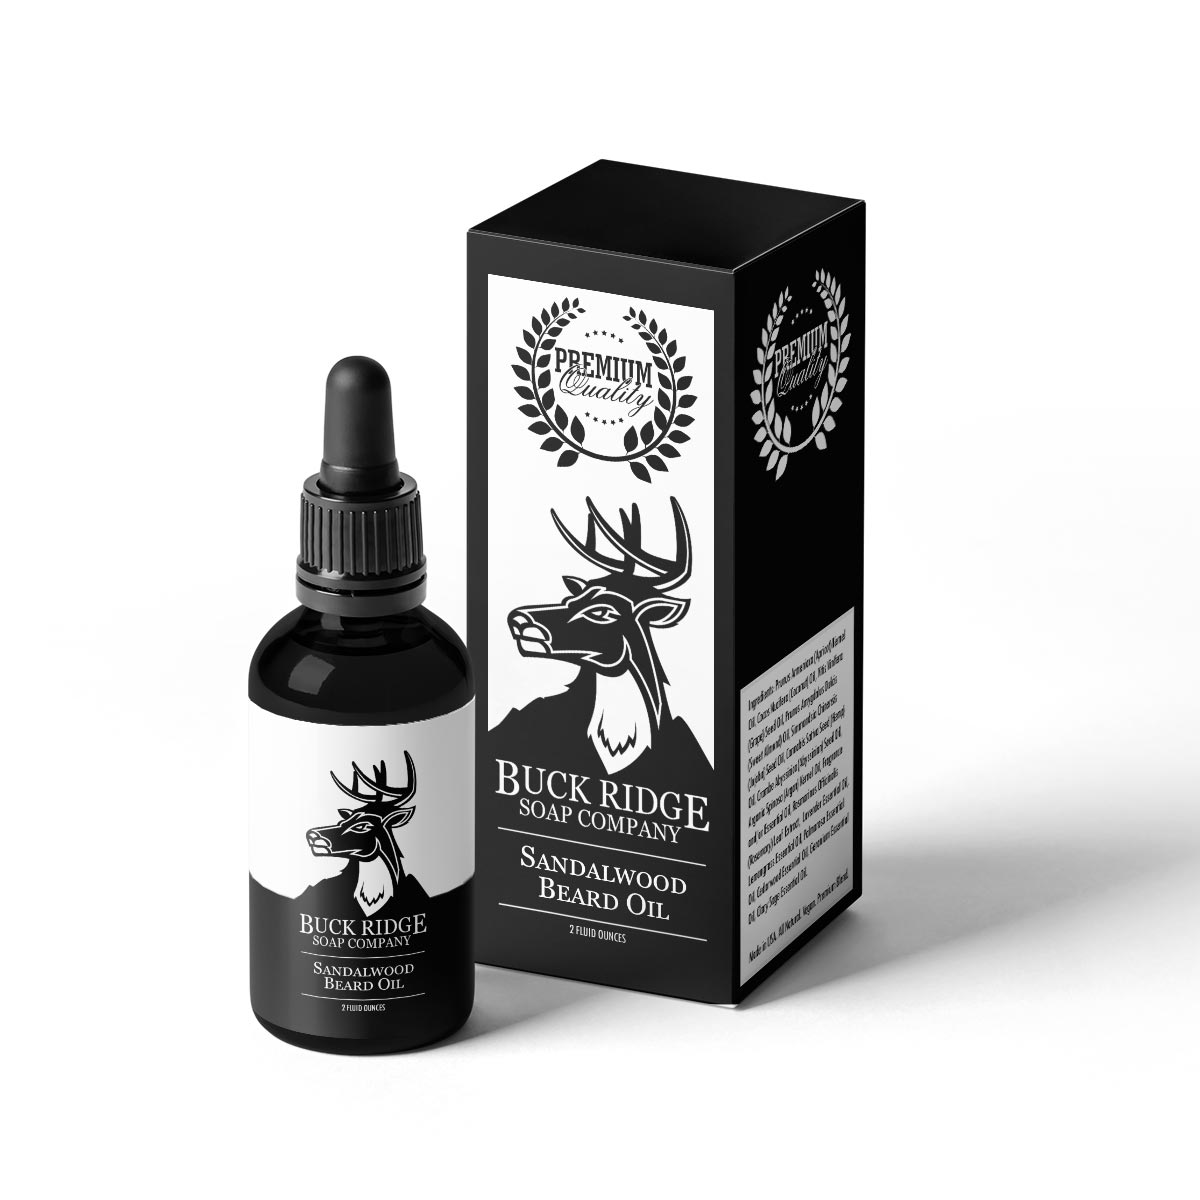 Sandalwood Men's Natural Beard Oils by Buck Ridge Soap Co.